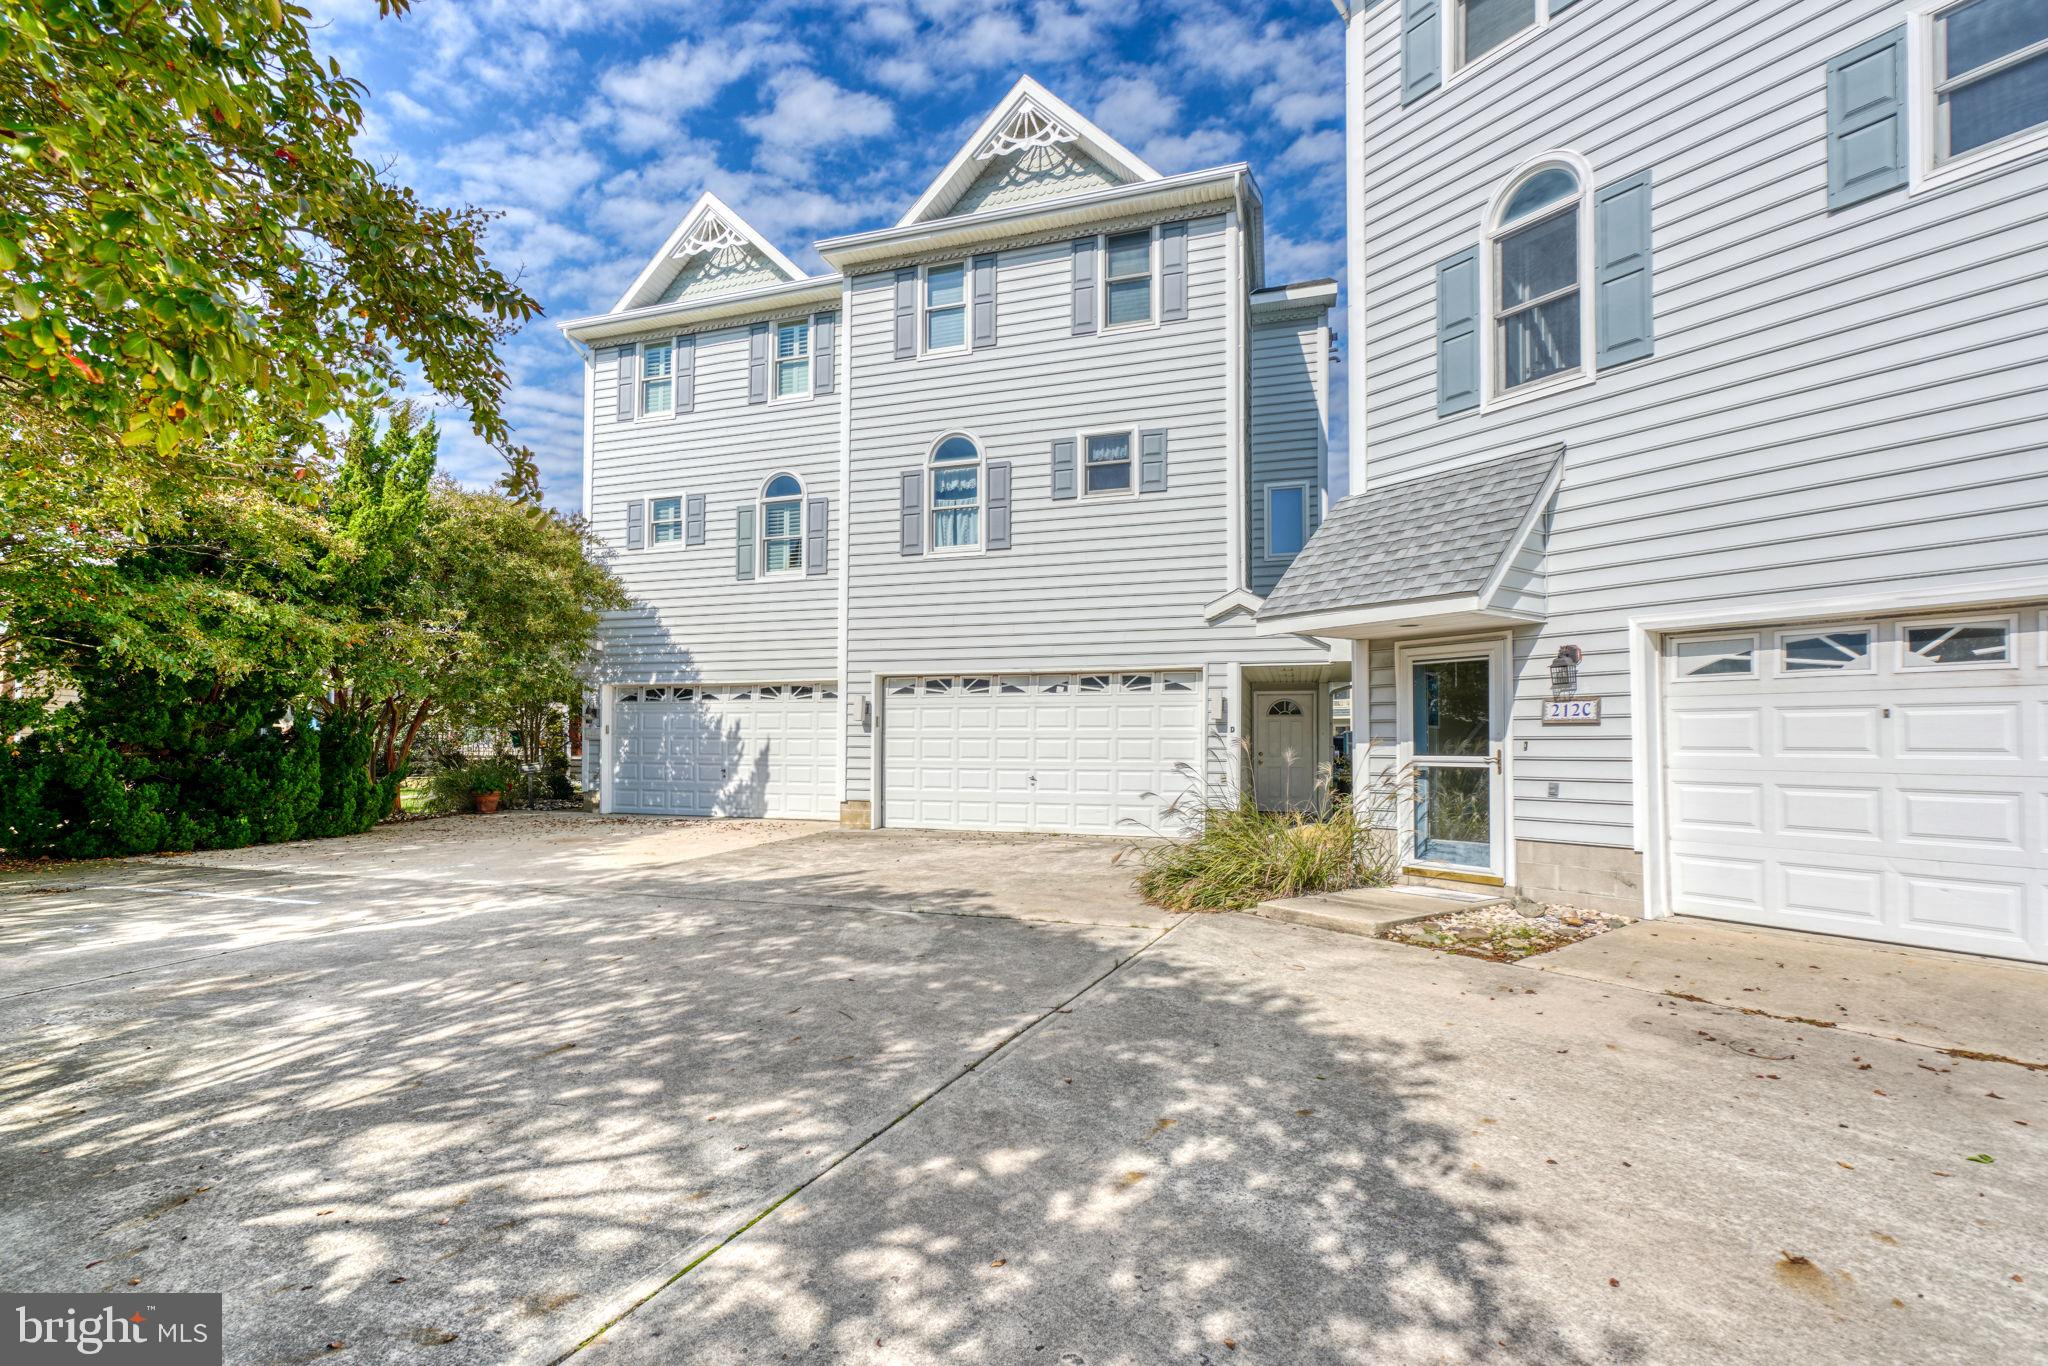 This beautiful end of row town home is located on a bayside canal on a quiet residential street in u